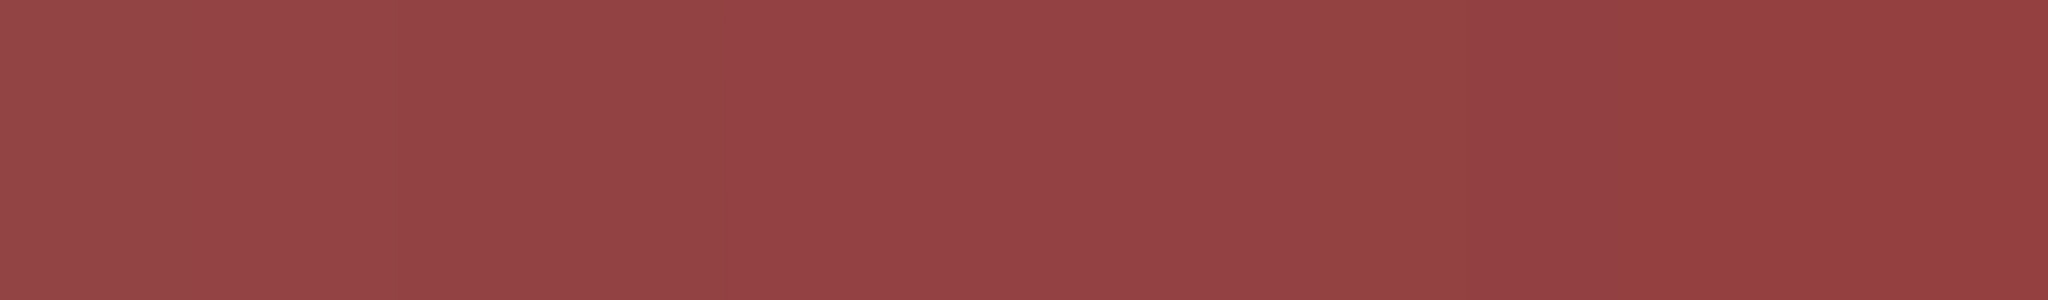 HU 132656 ABS Edge Dark Red Smooth Gloss 90°